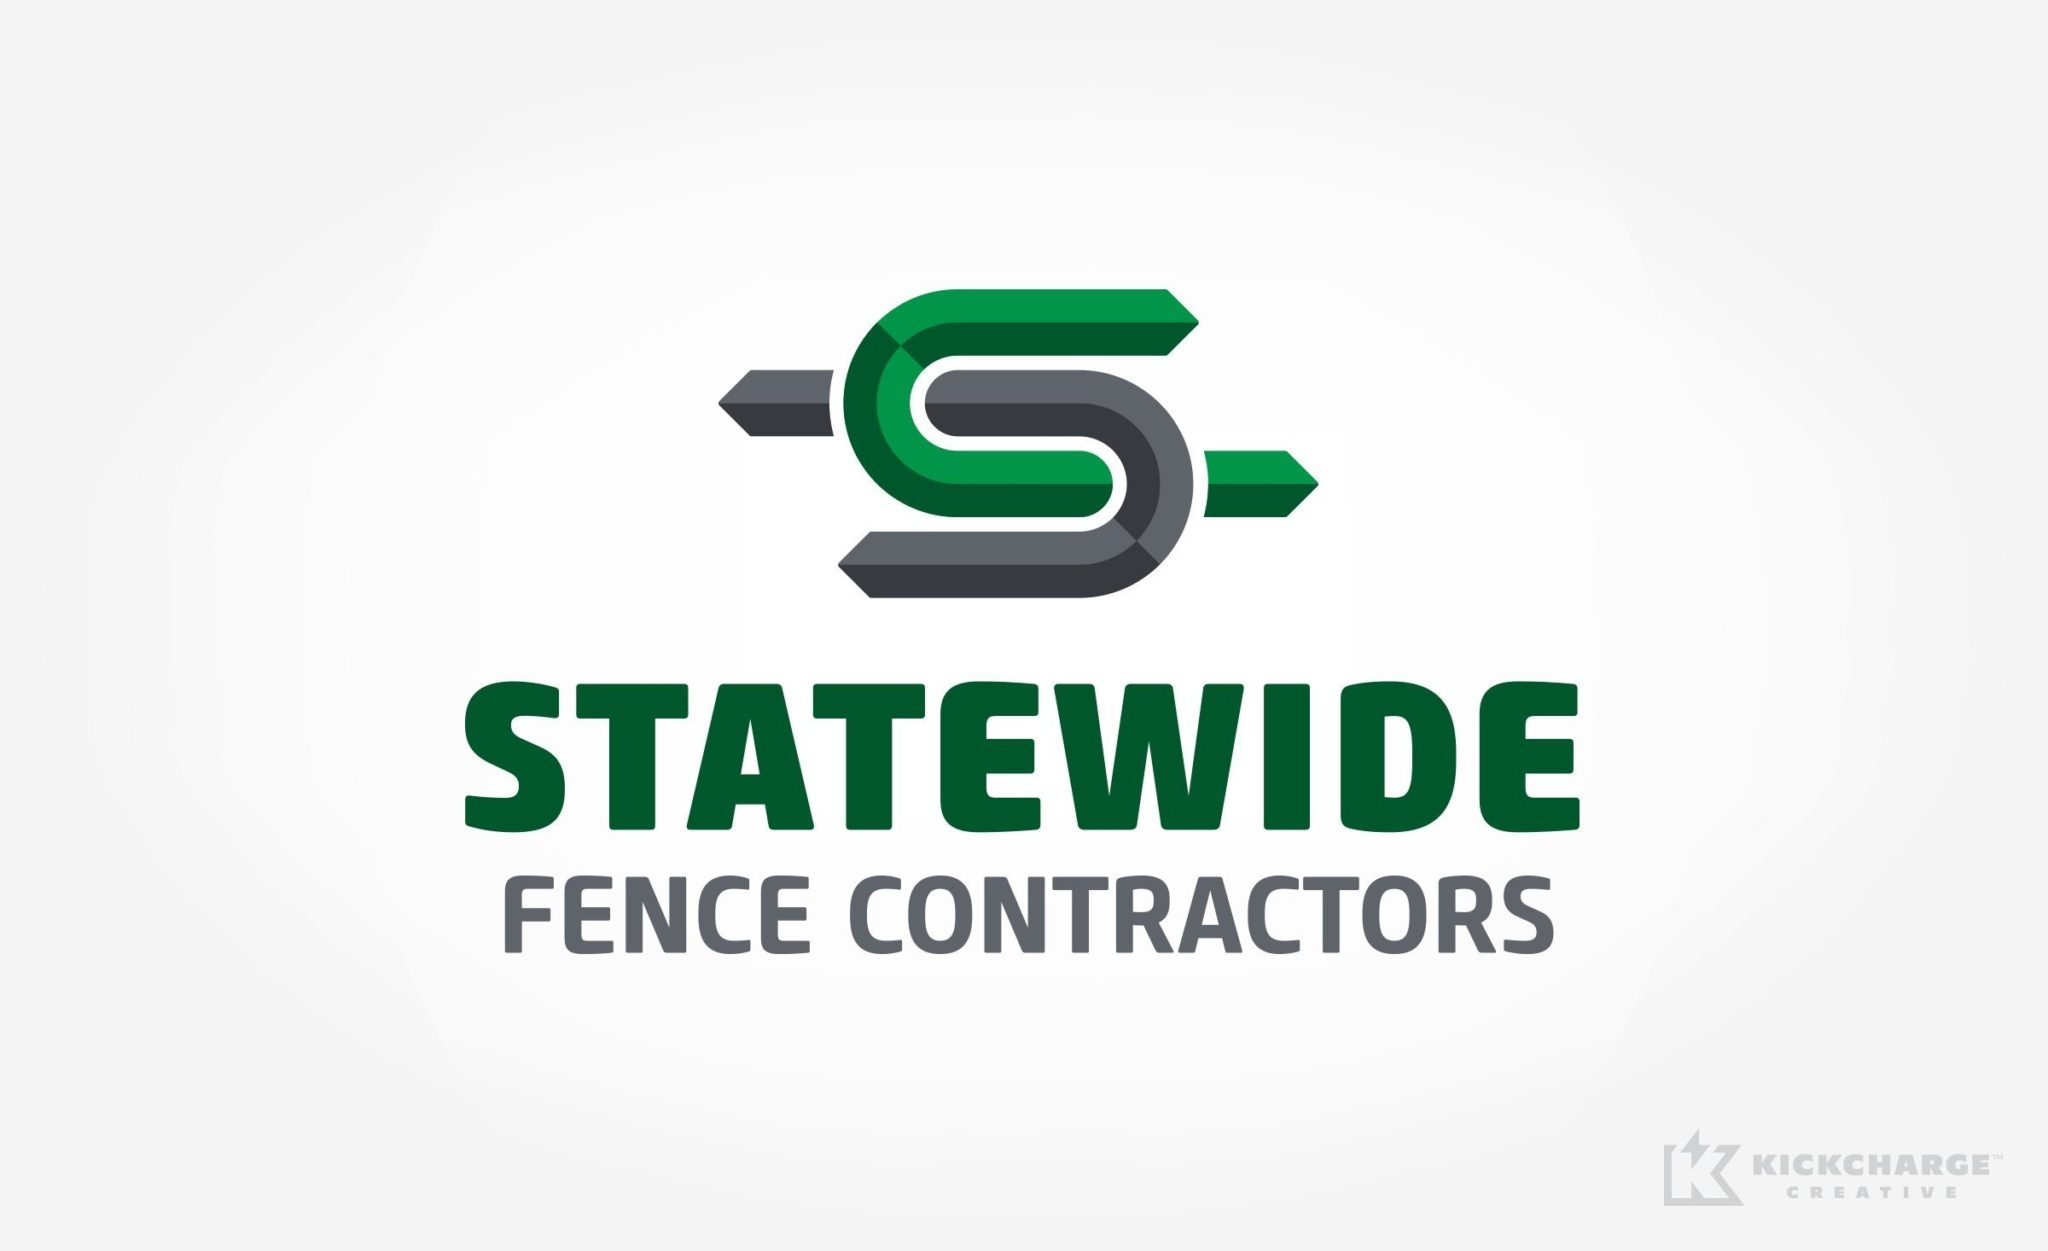 Statewide Fence Contractors